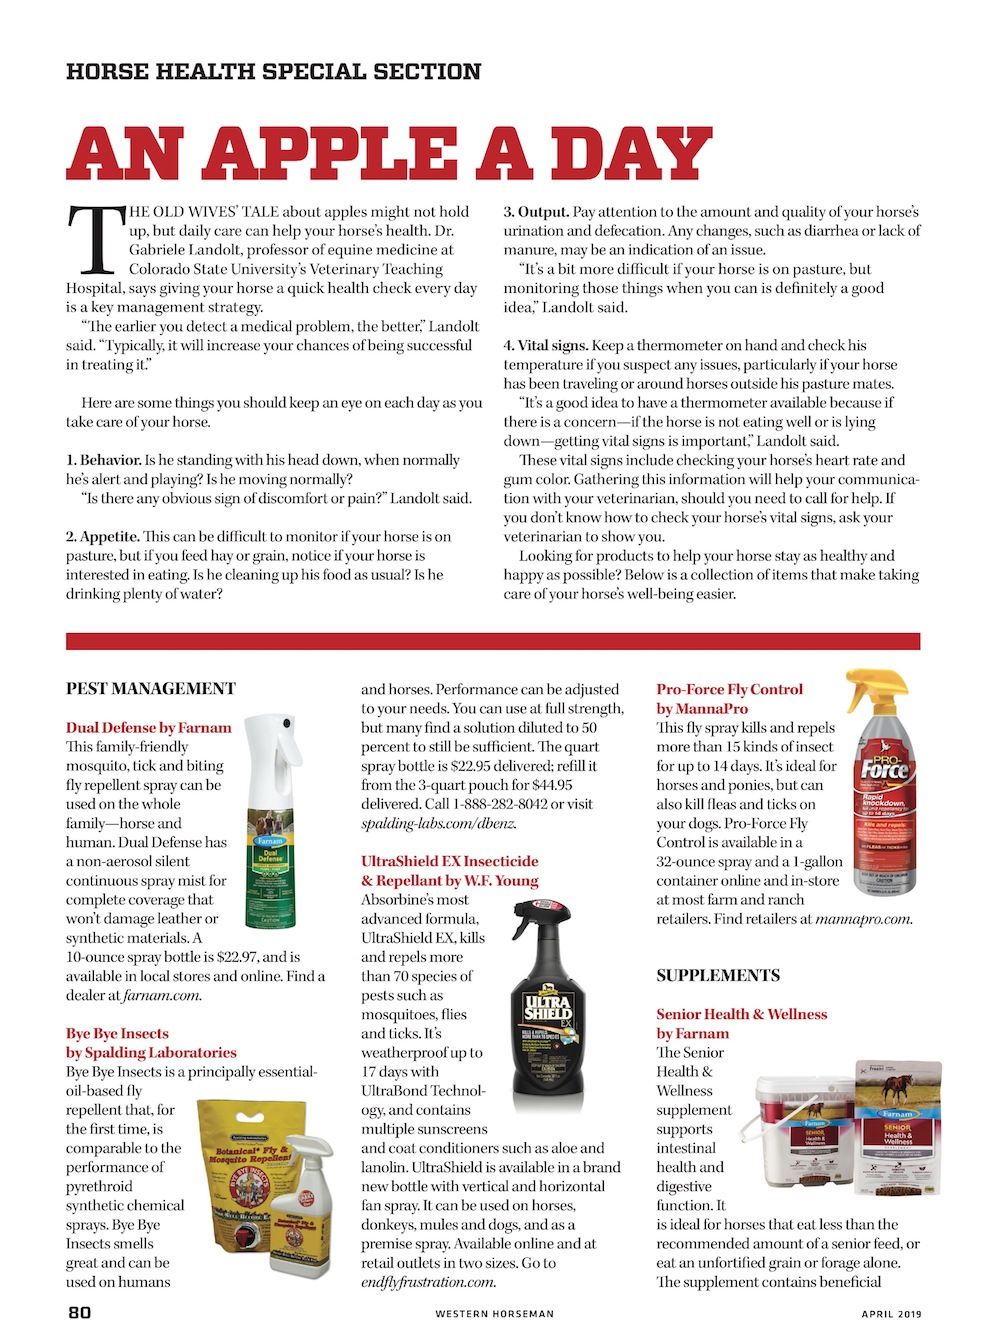 Horse Health special advertising section in Western Horseman magazine